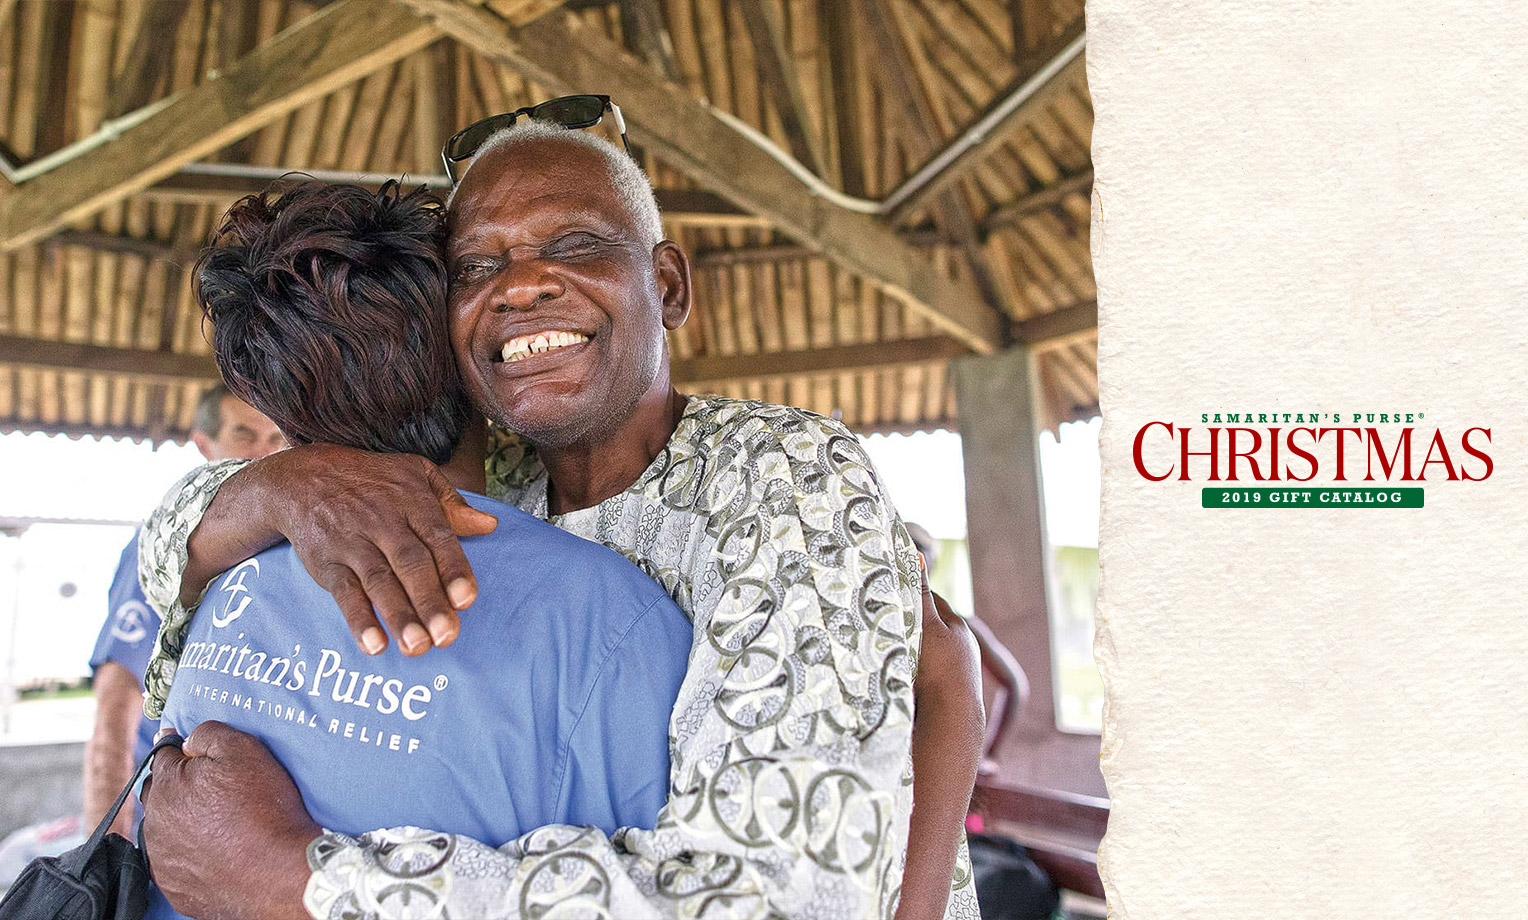 Samaritan's Purse seeks out those who are living in darkness, sending medical teams to restore their physical sight and offer new hope. Our surgeons can perform the procedure in just a couple of hours, and when gauze is removed, patients see more clearly than they have in years.